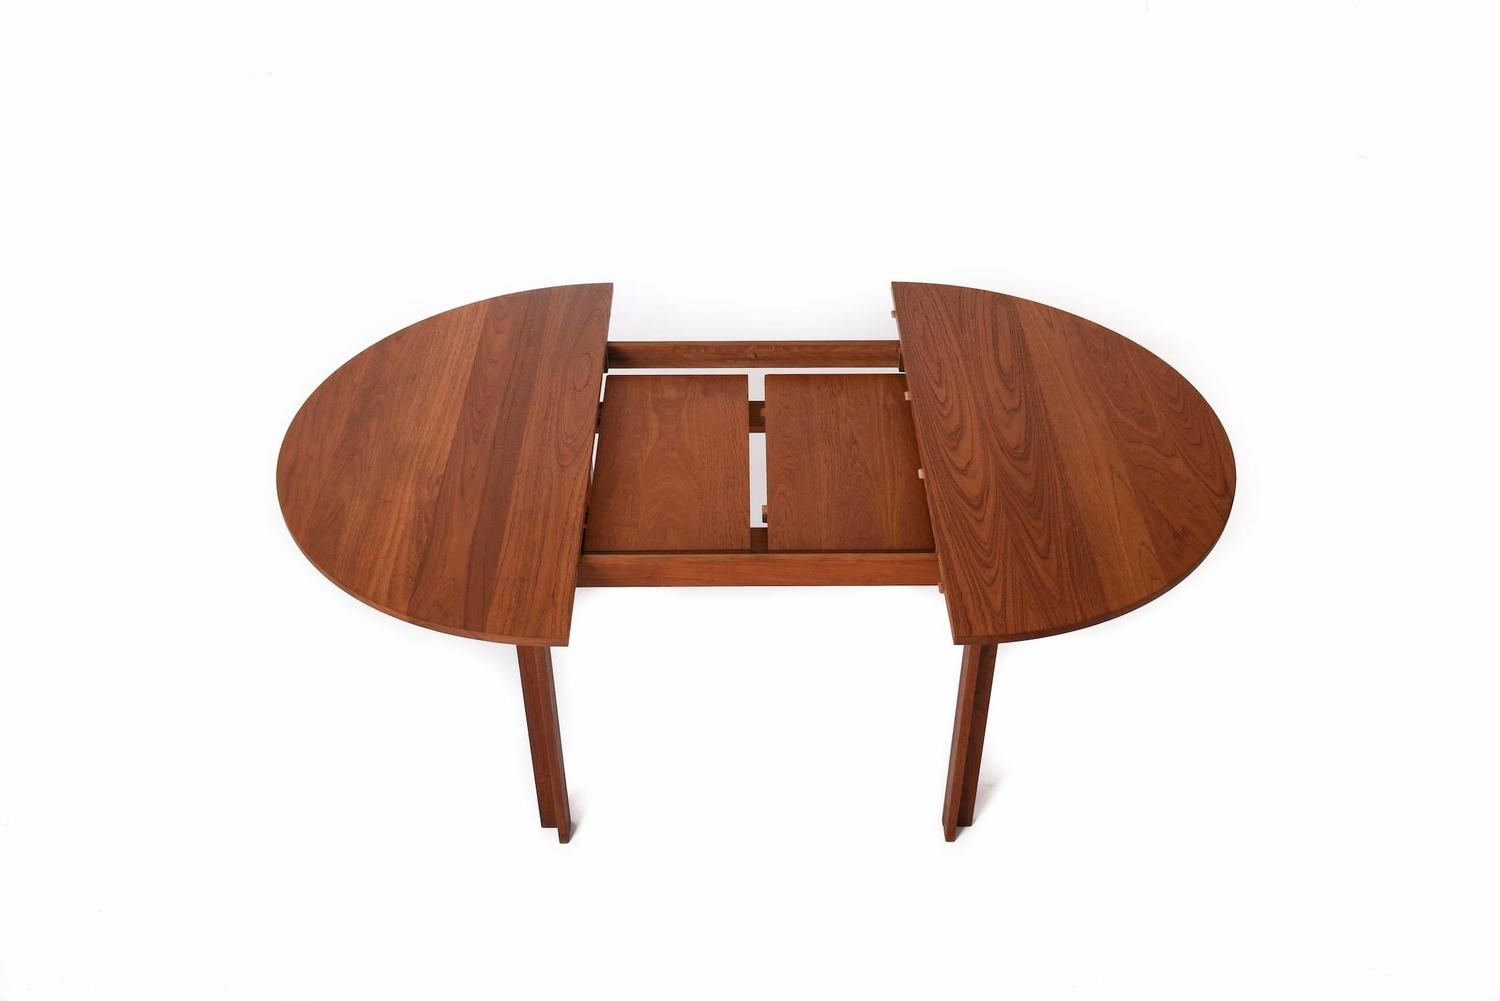 Danish Modern Round Solid Teak Dining Table With Two